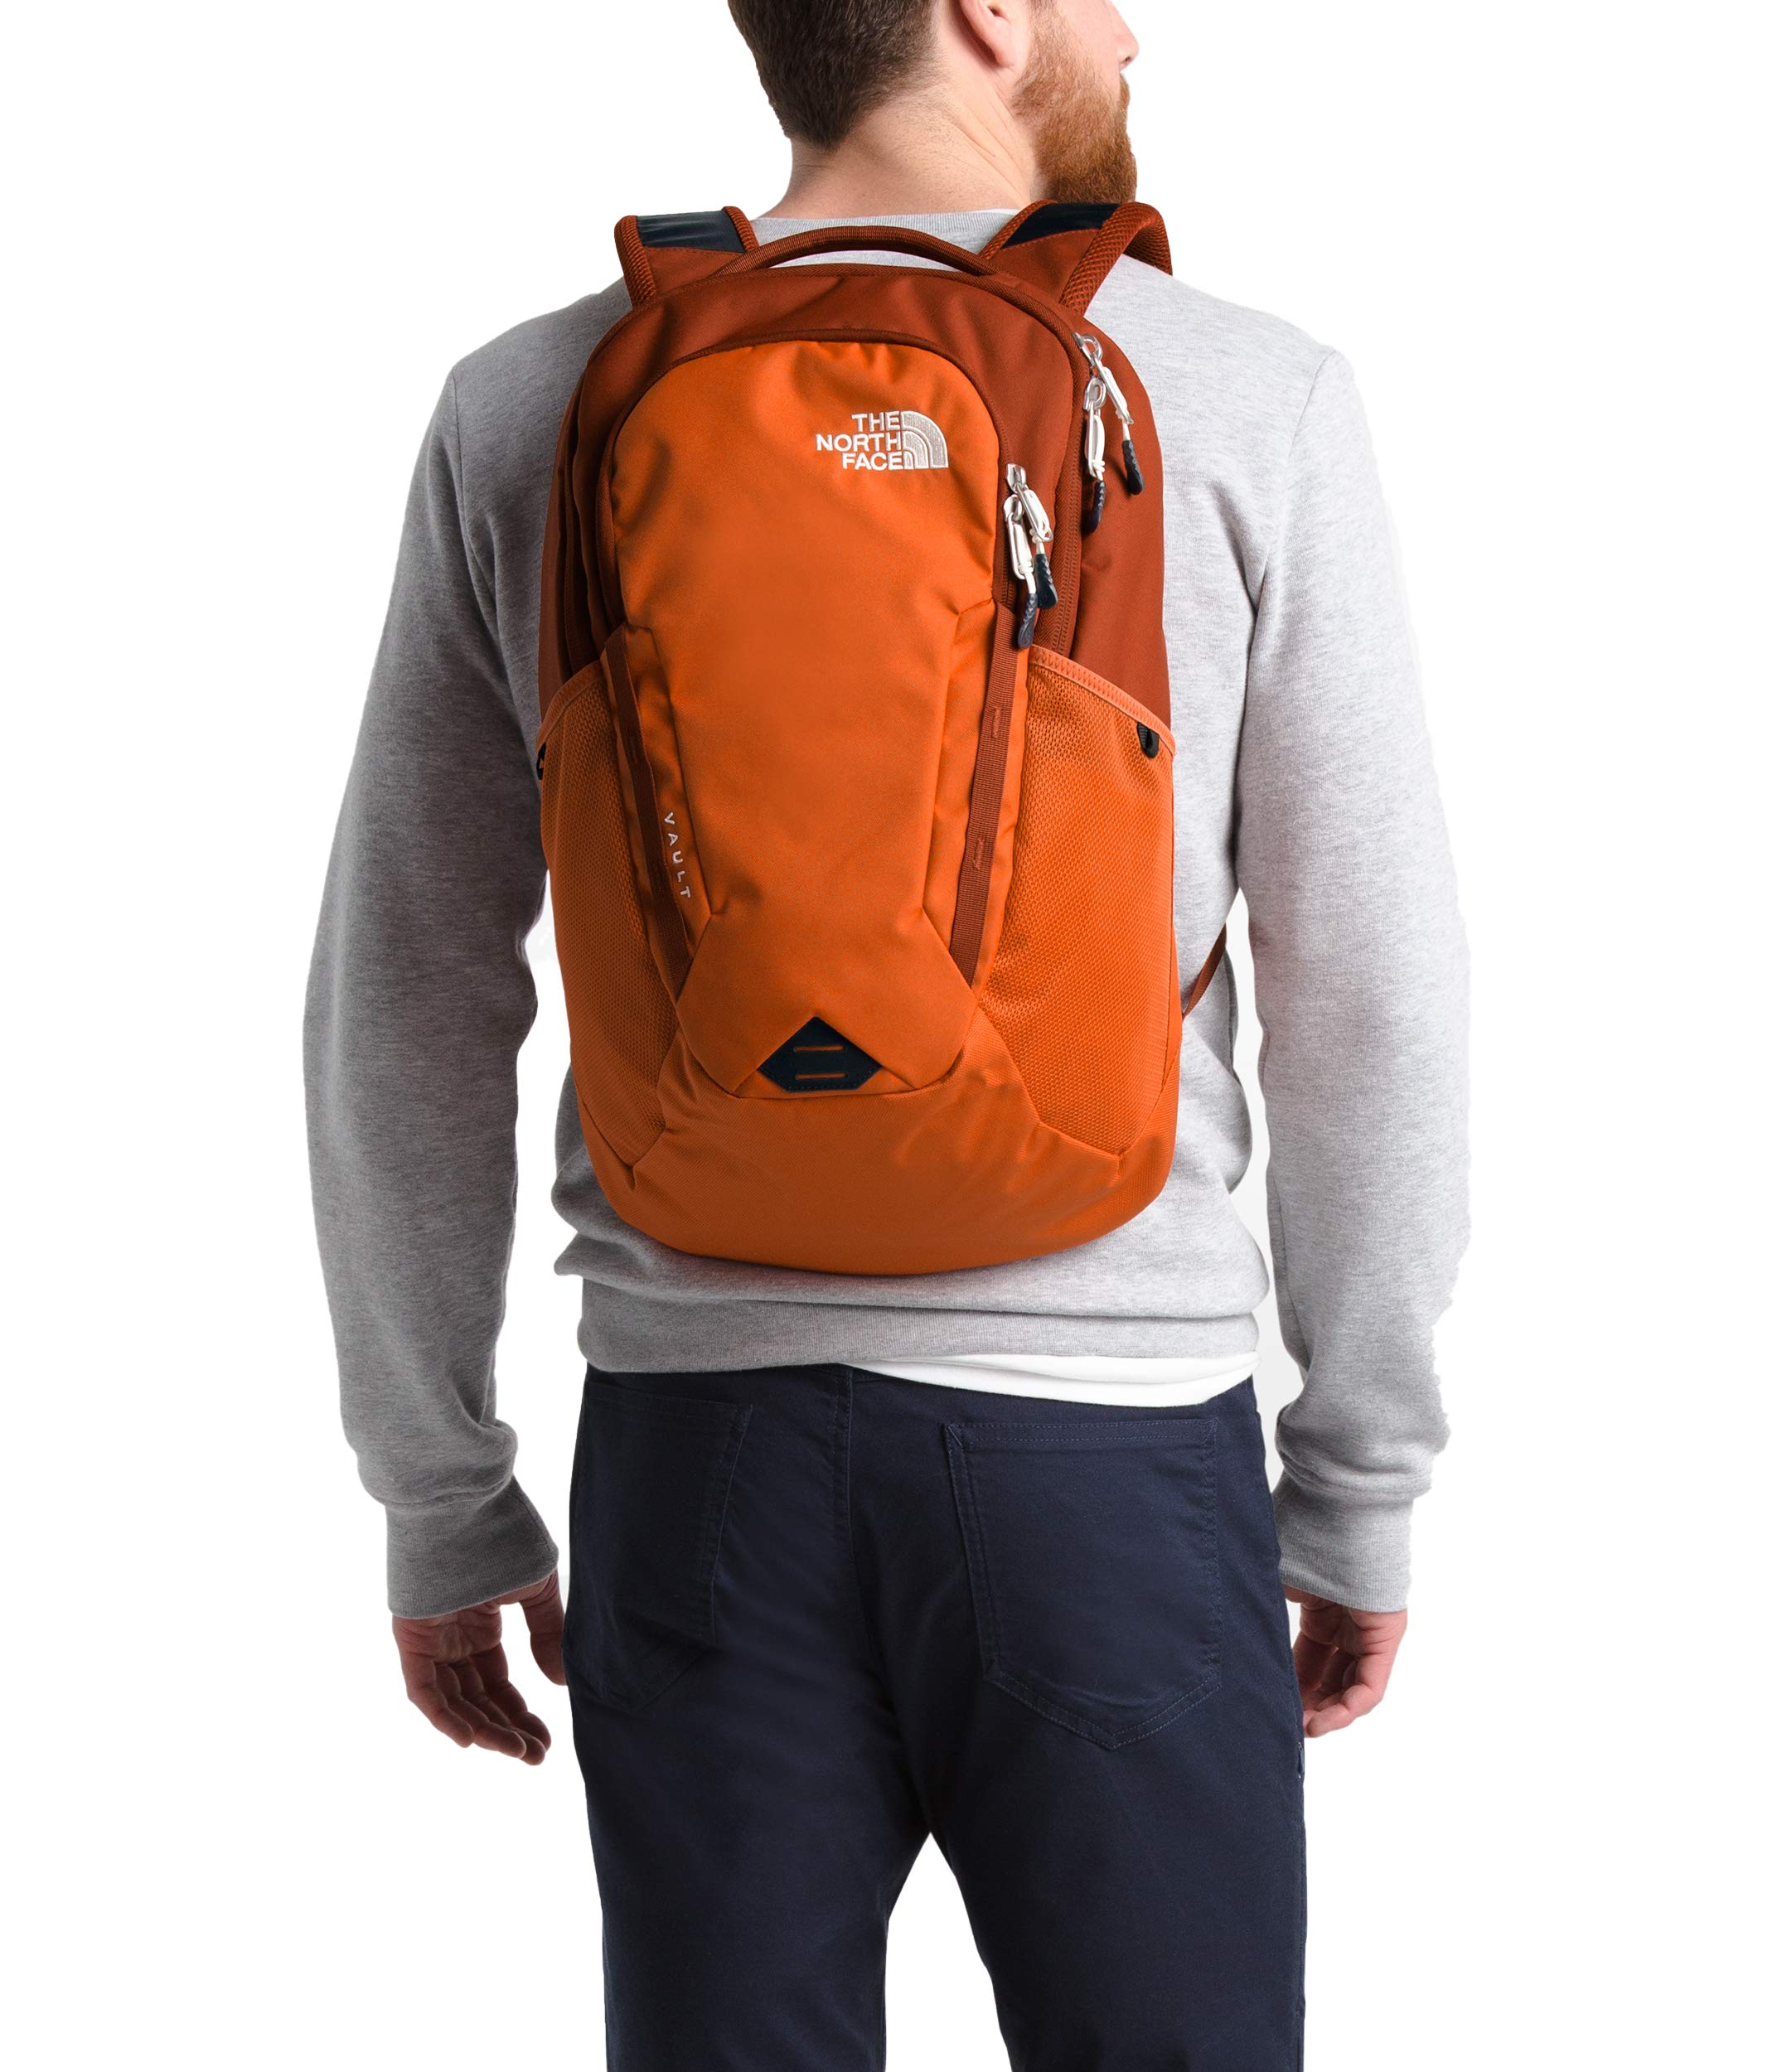 The North Face Vault, Papaya Orange/Picante Red, OS by The North Face